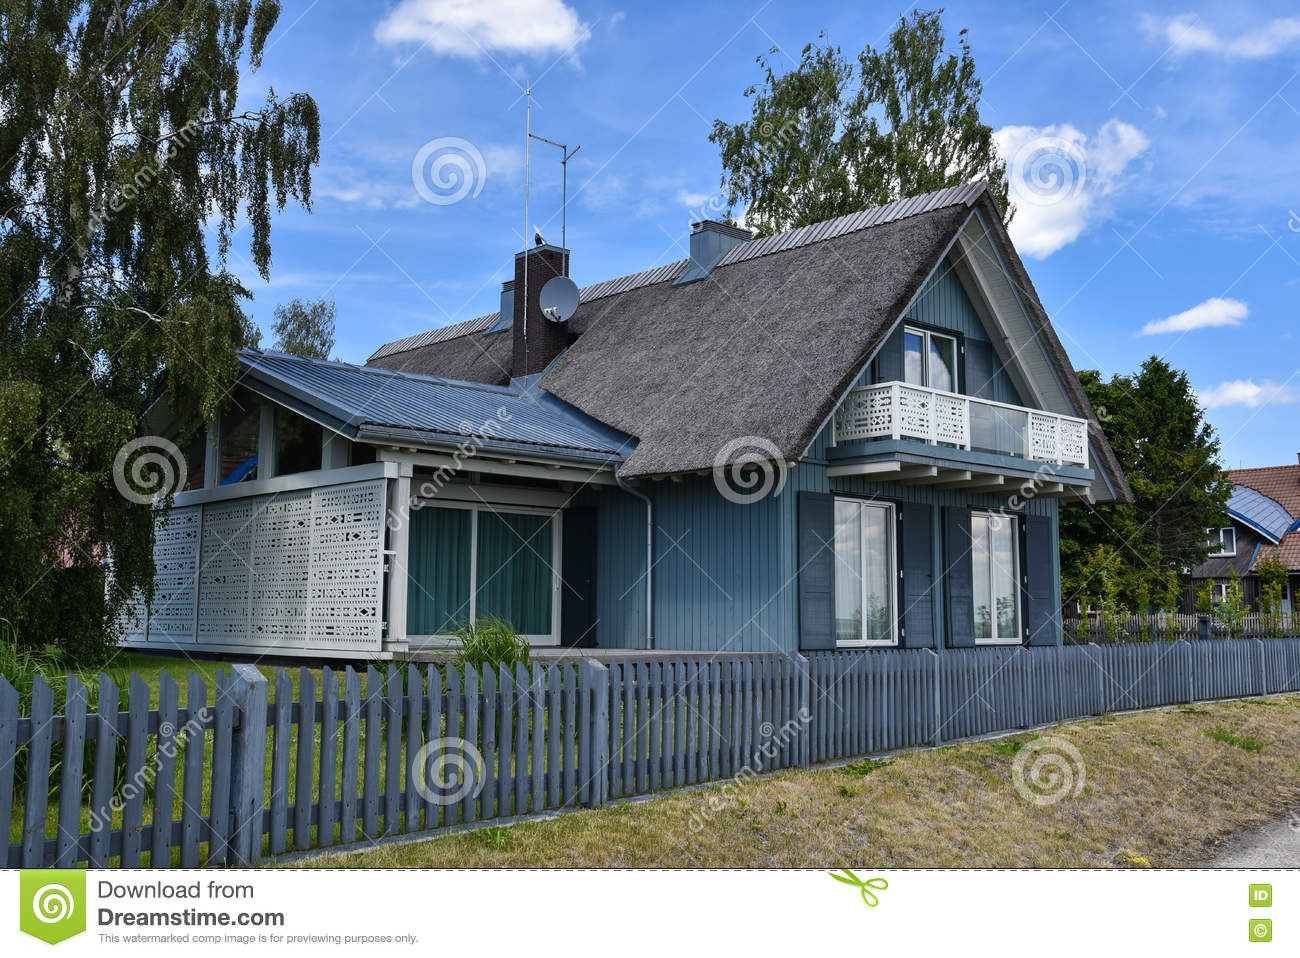 wooden country house exterior scene photo - 7